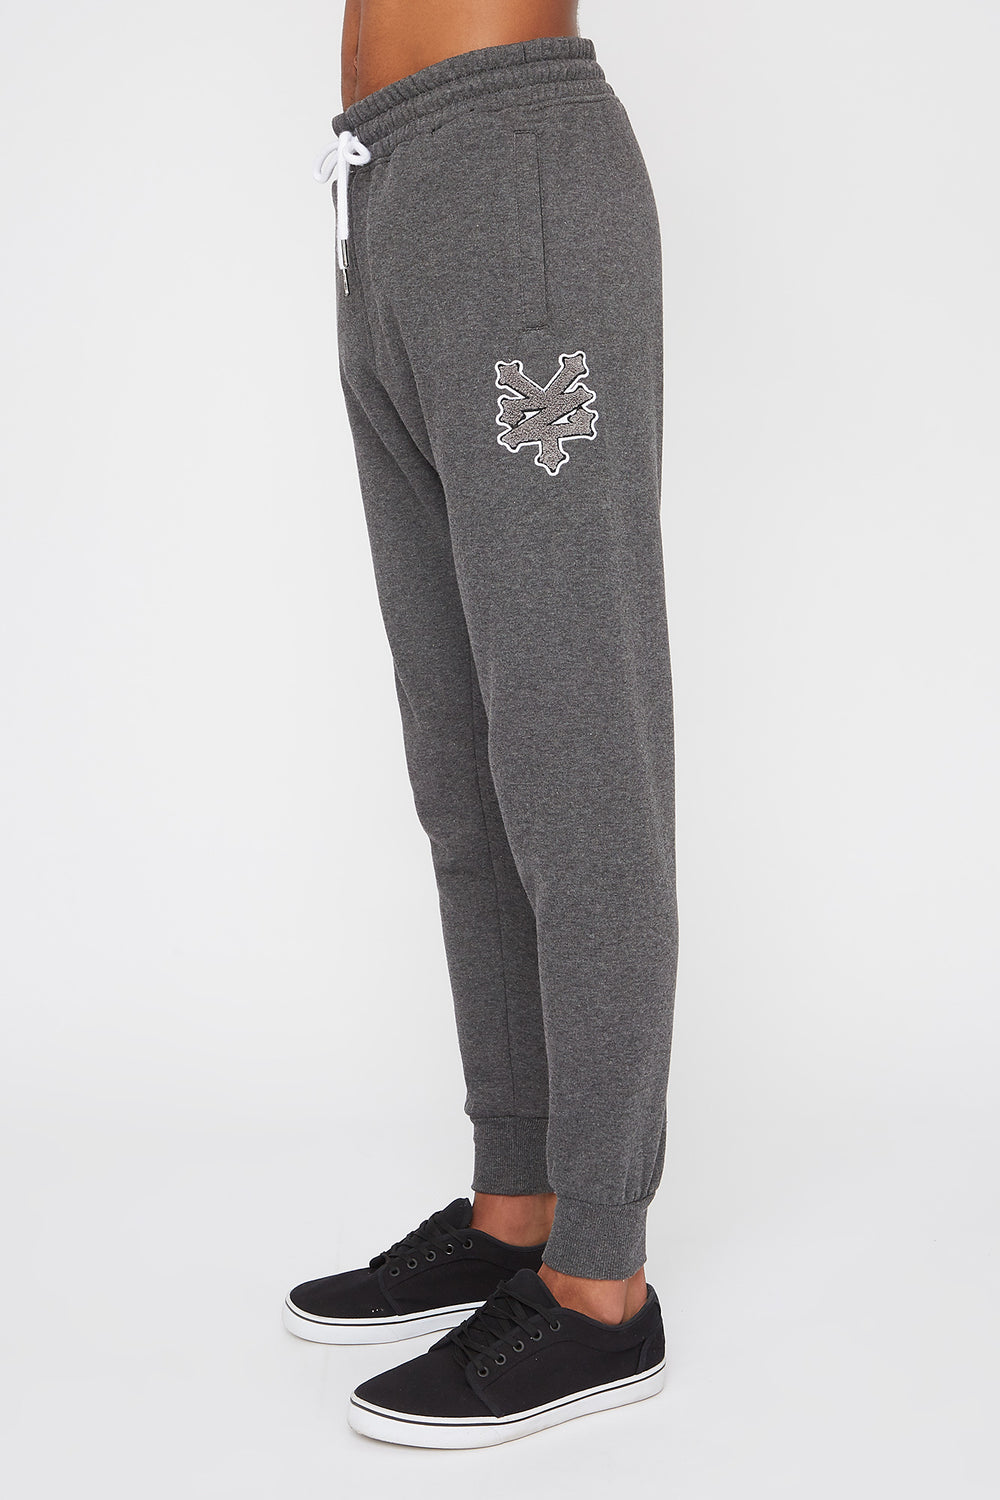 Zoo York Mens Chenille Patch Logo Joggers Charcoal